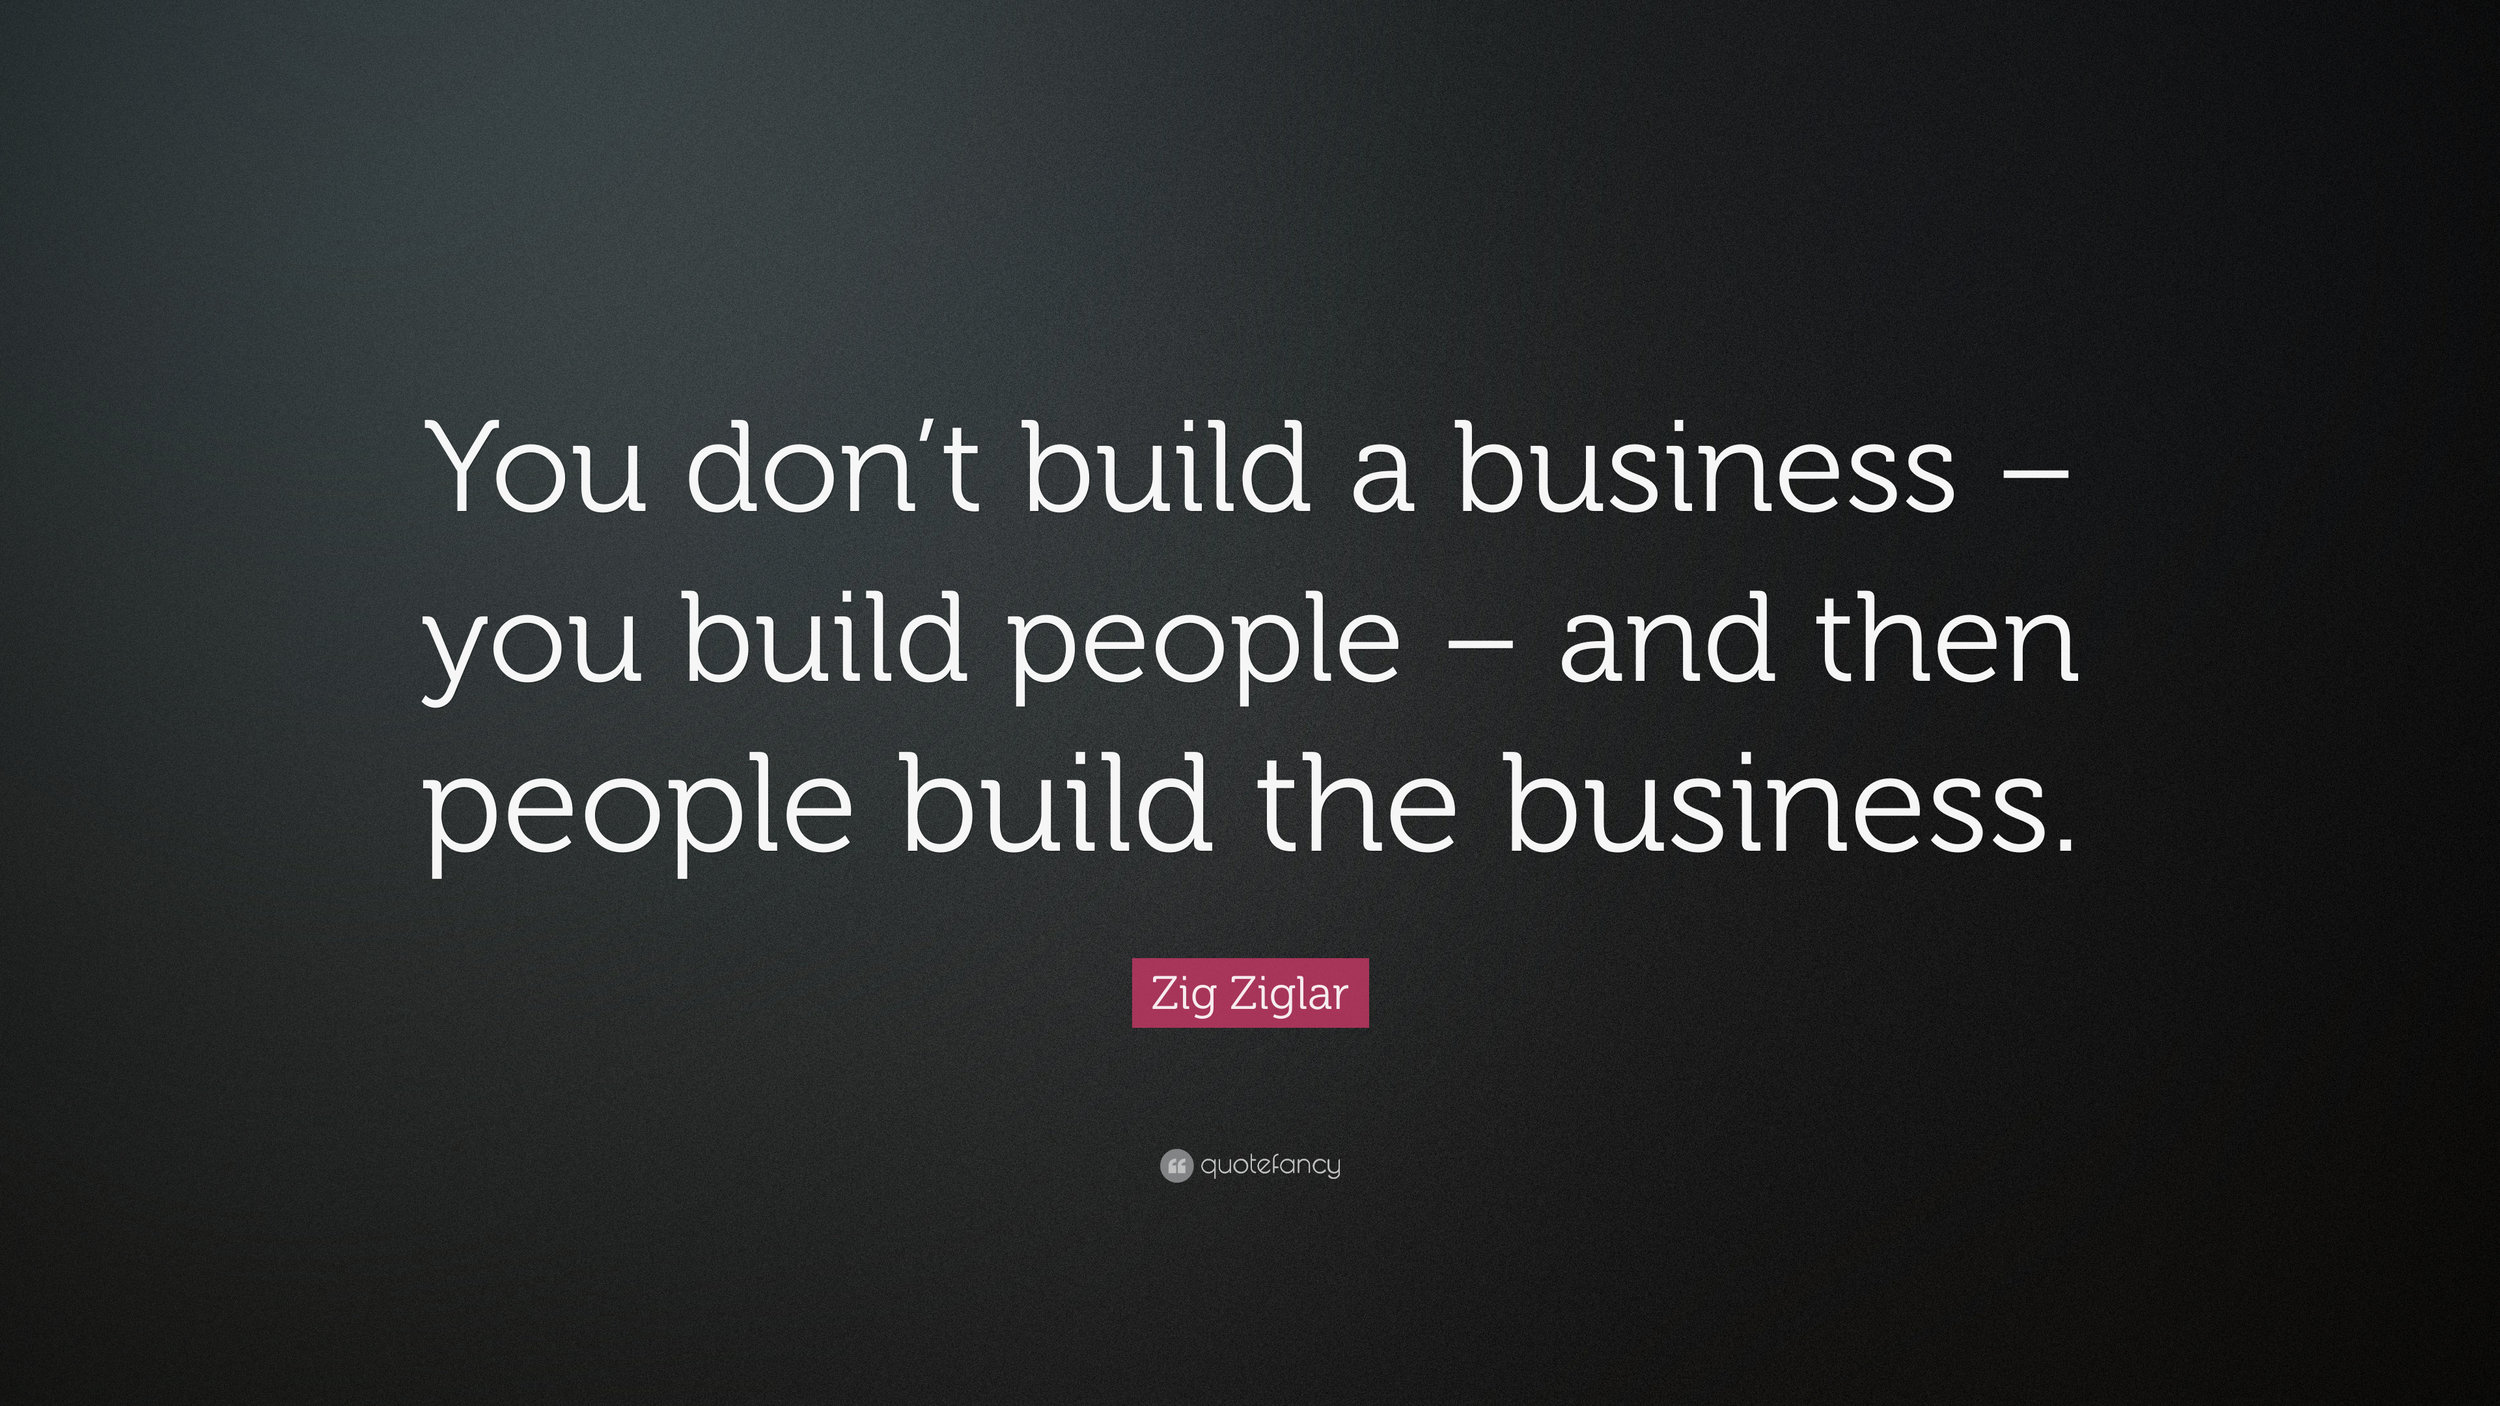 2021637-Zig-Ziglar-Quote-You-don-t-build-a-business-you-build-people-and.jpg